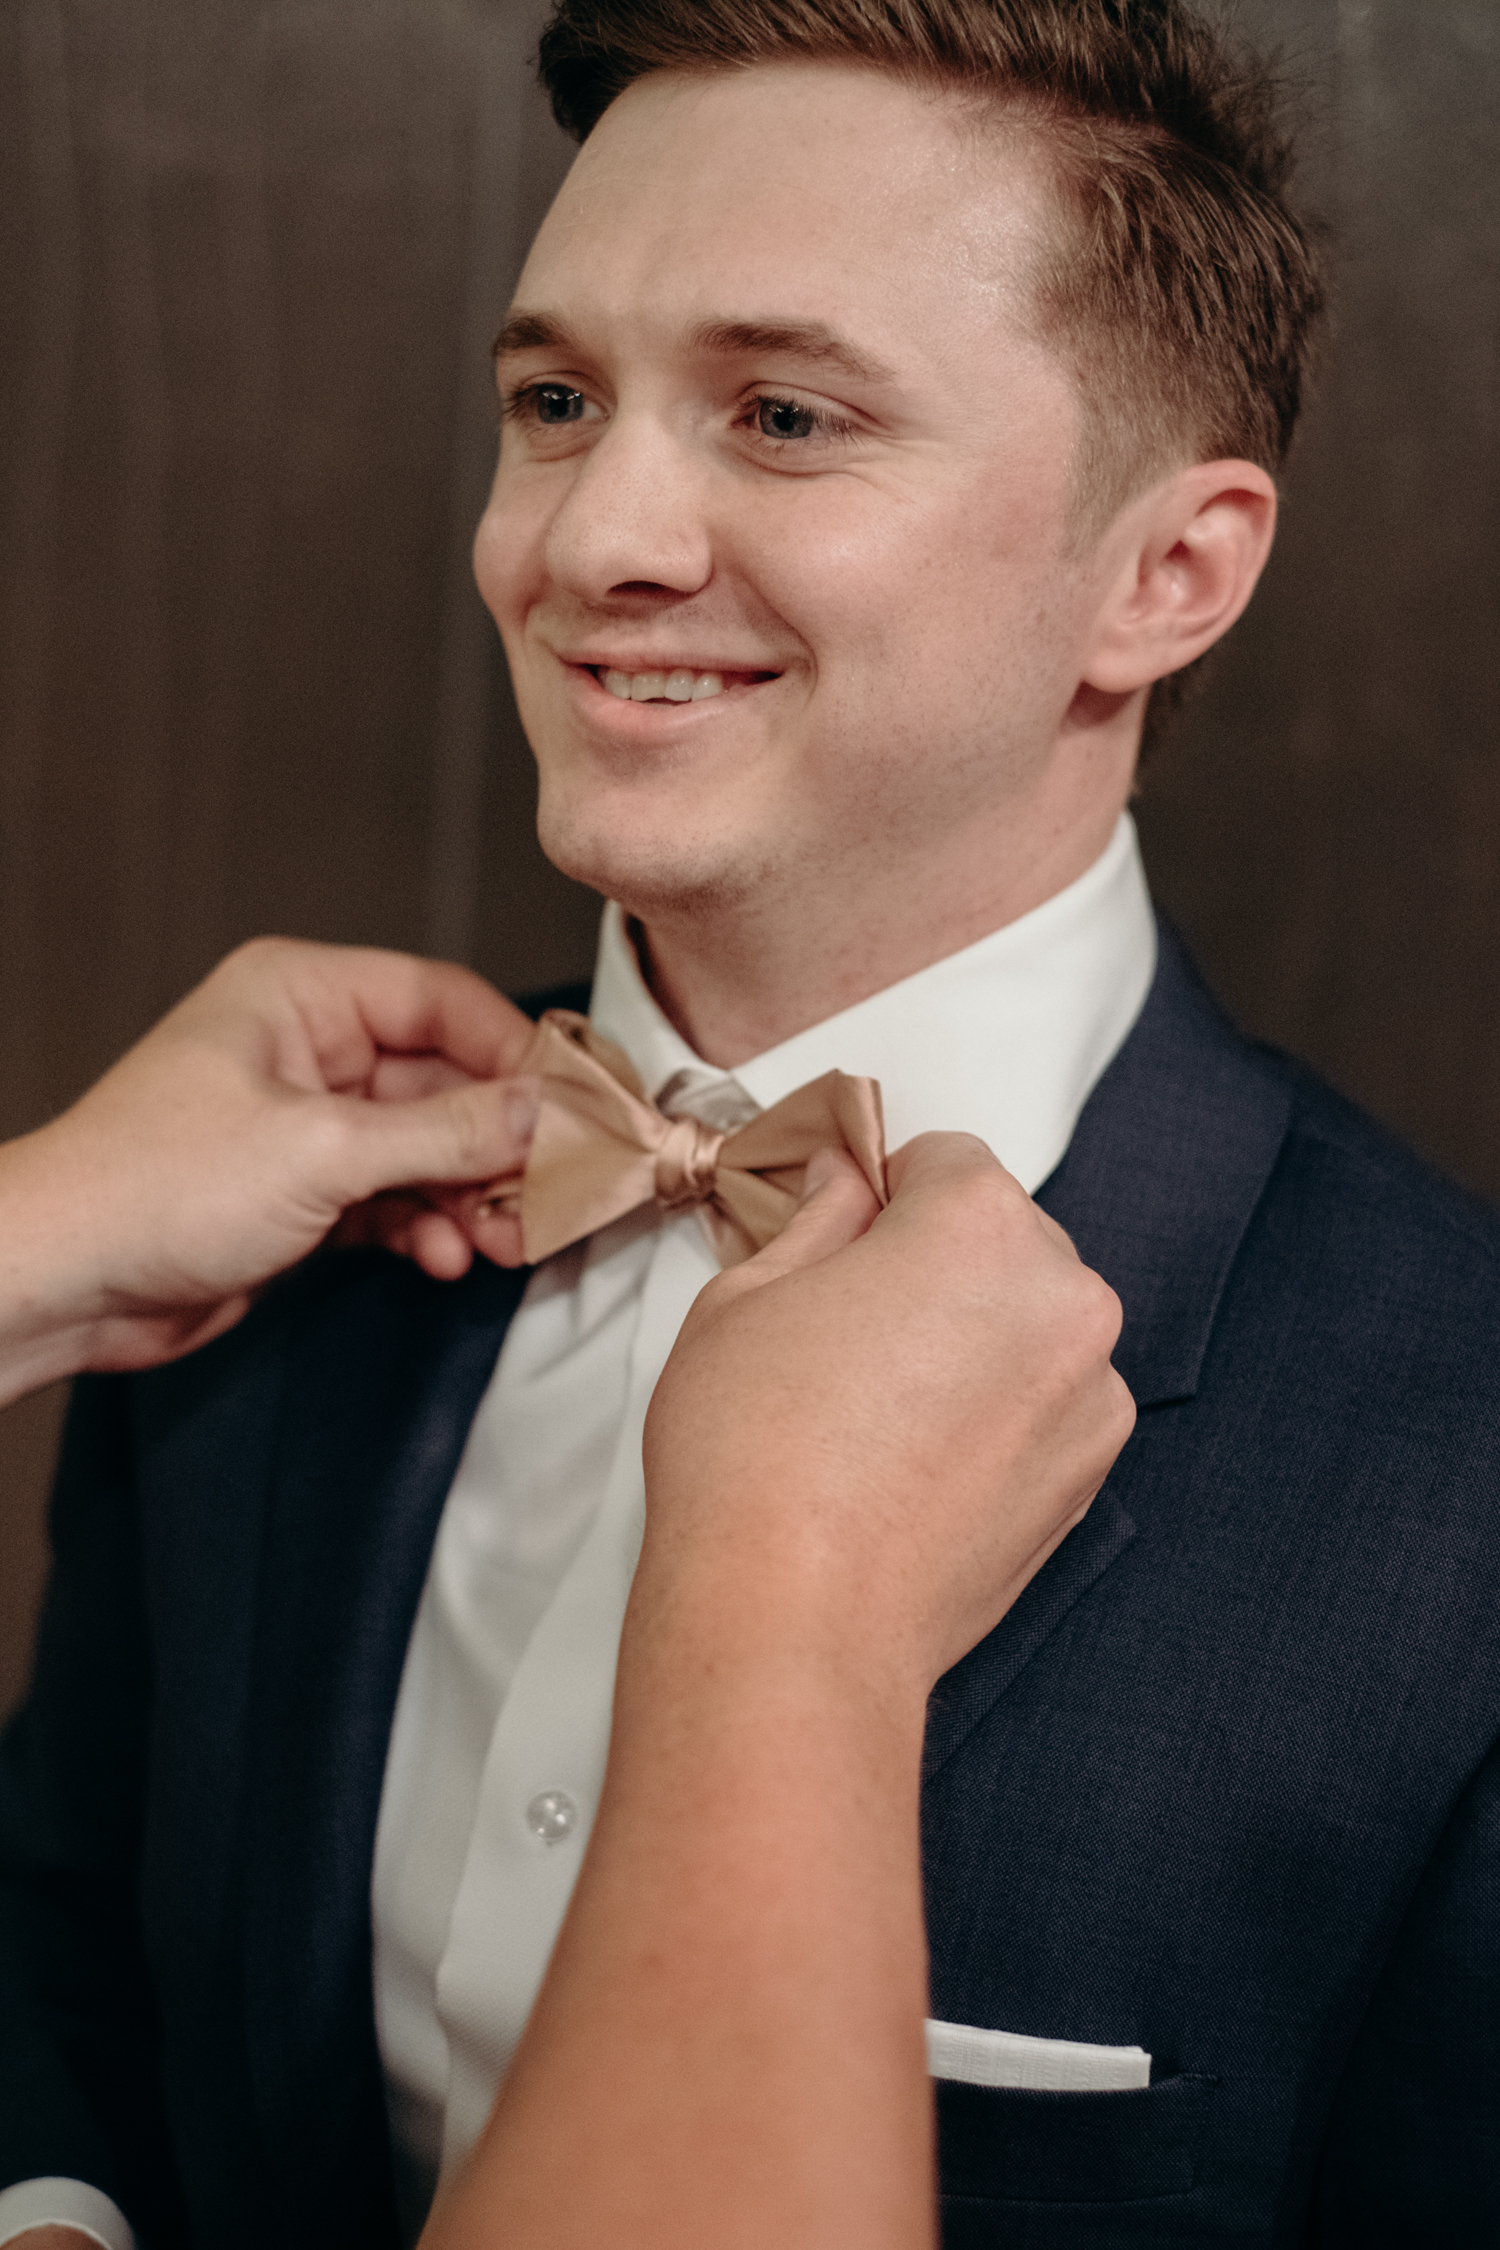 A groom gets his bowtie checked by a groomsman before he walks down the aisle at his wedding at Lansdowne Resort.